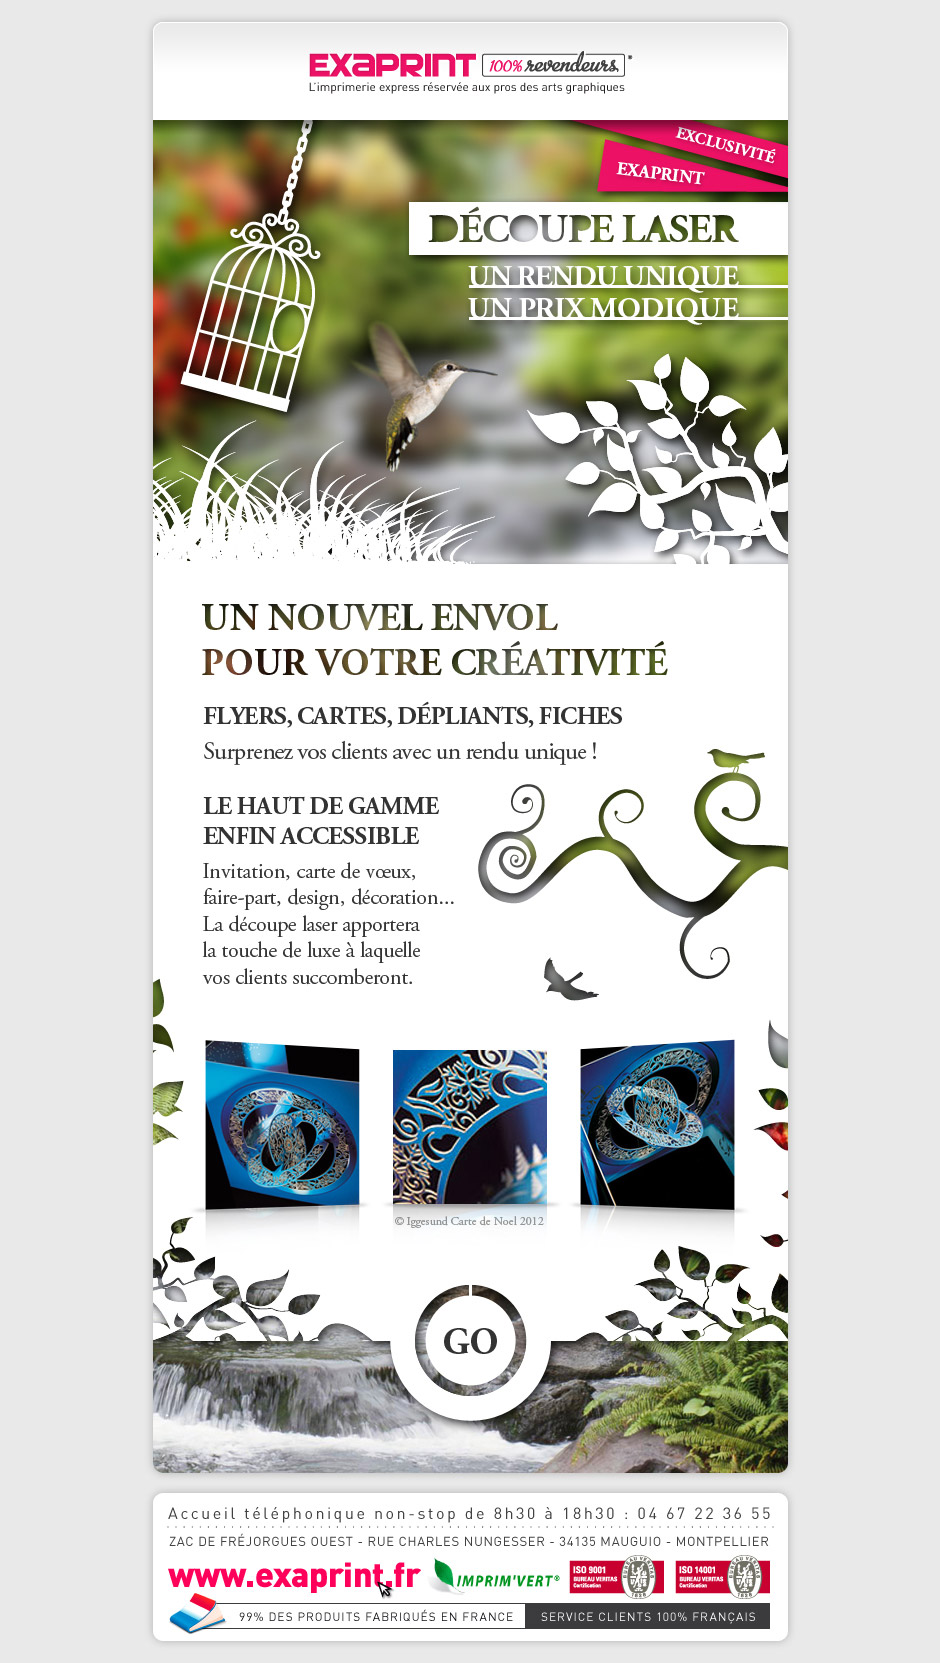 Graphiste Montpellier Creation Exaprint Decoupe Laser Agence Communication